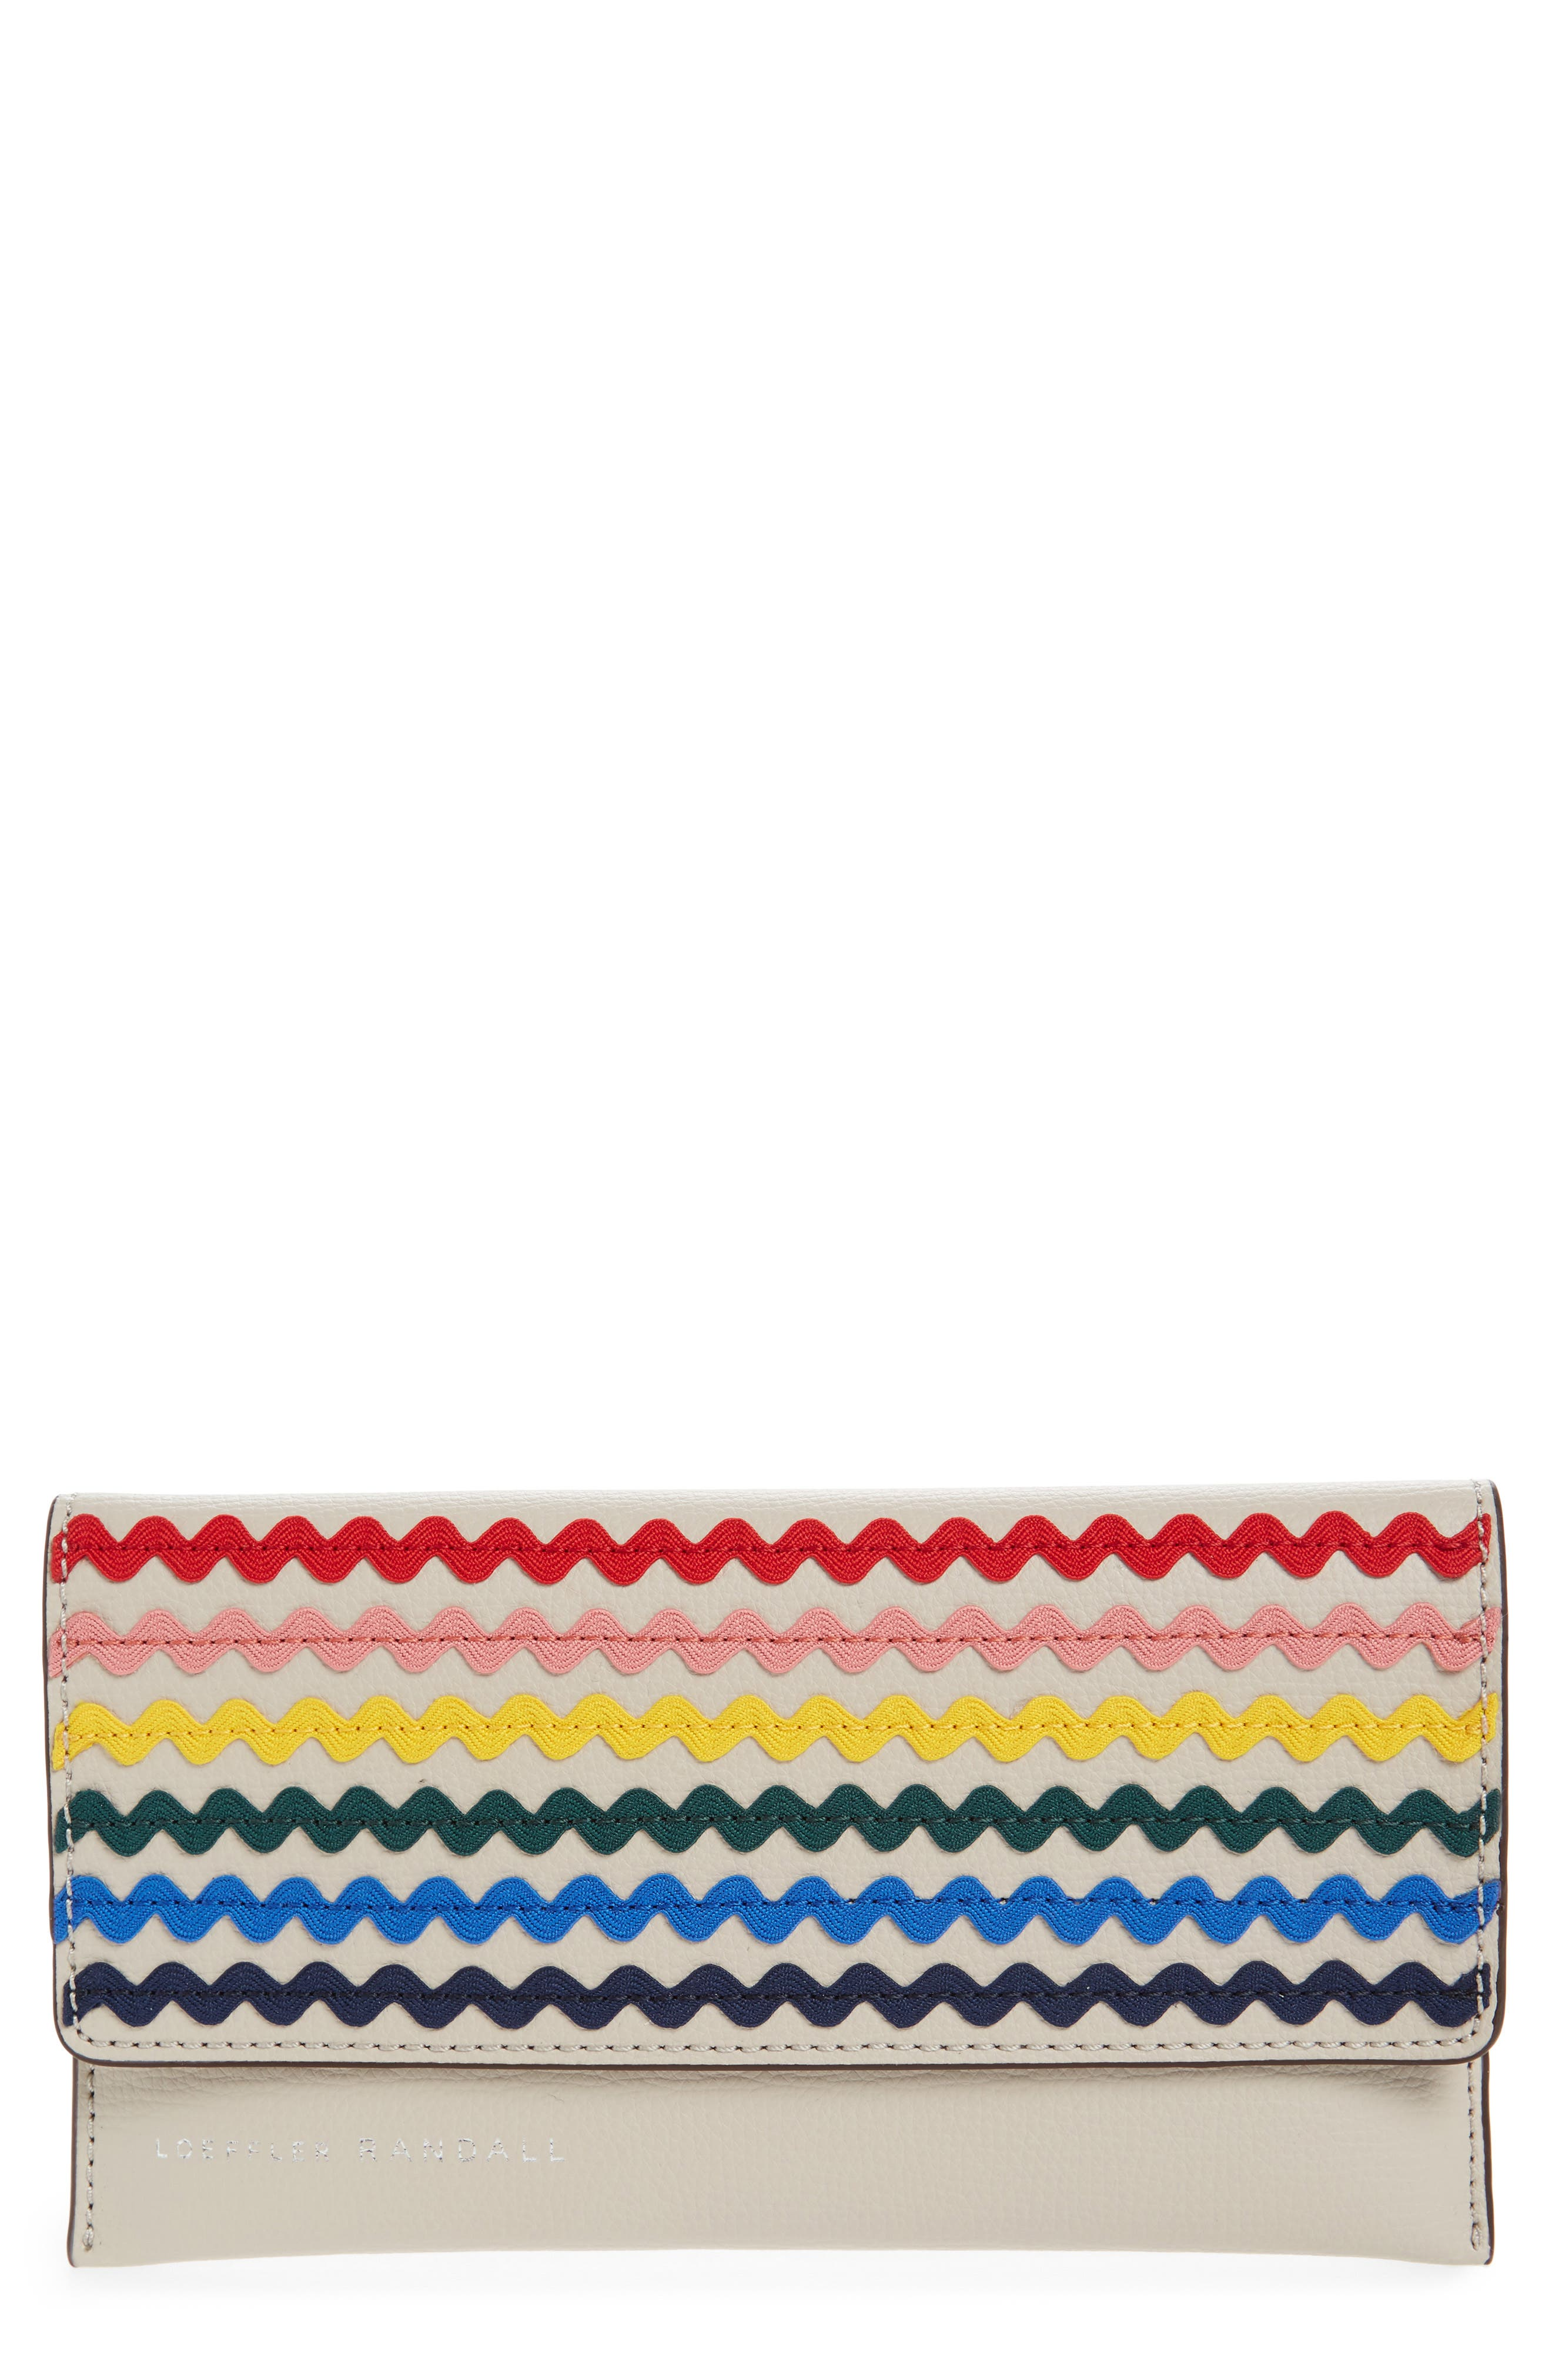 Everything Embellished Leather Wallet,                             Main thumbnail 1, color,